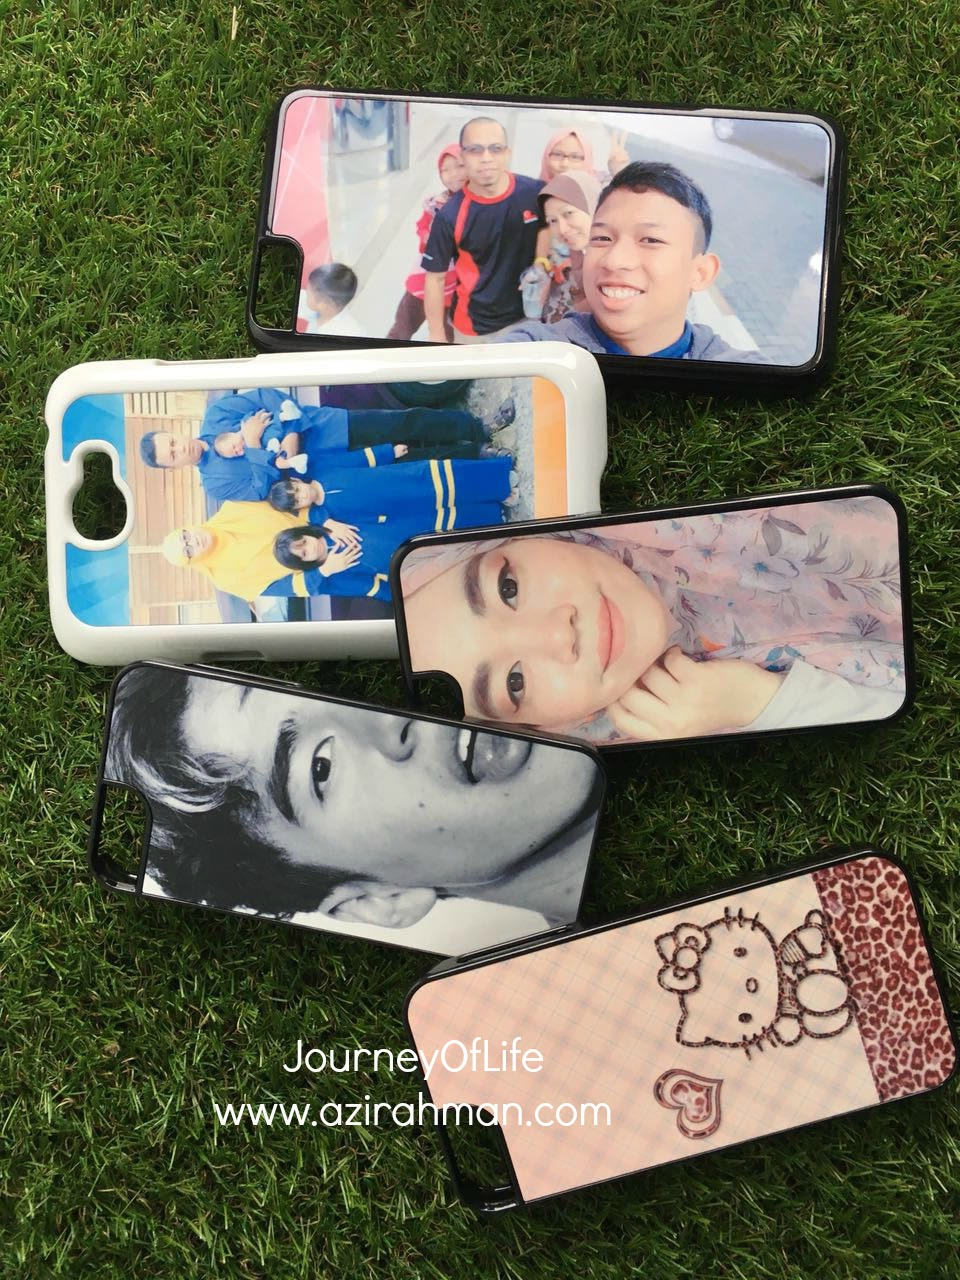 casing handphone, iphone 6, casing cantik, weprint